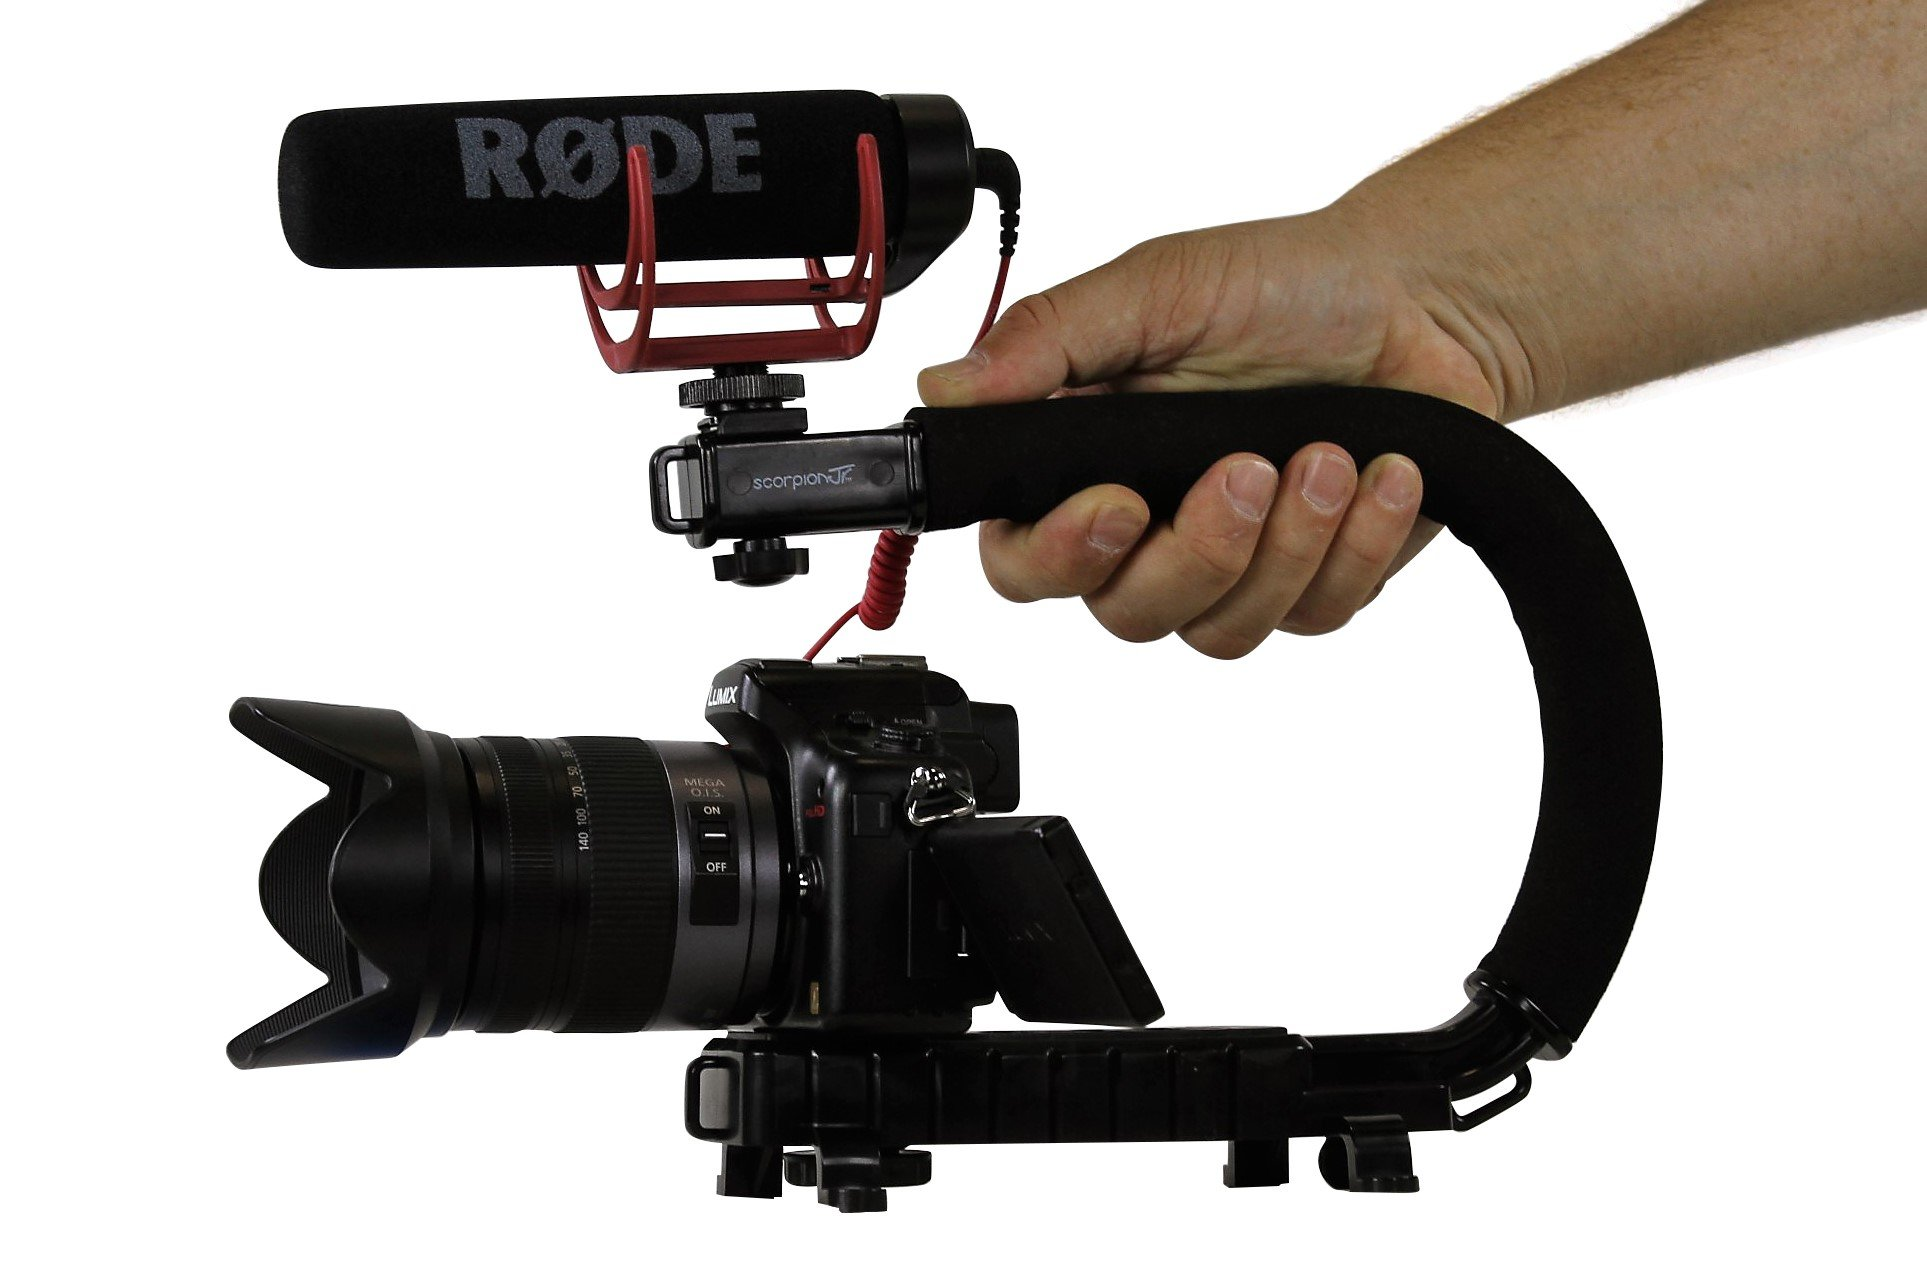 Cam Caddie Scorpion Jr Stabilizing Camera Handle for DSLR and GoPro Action Cameras - Professional Handheld U/C-Shaped Grip with Integrated Accessory Shoe Mount for Microphone or LED Video Light - Includes: Smartphone / GoPro Adapters and 1/4-20 Threaded M